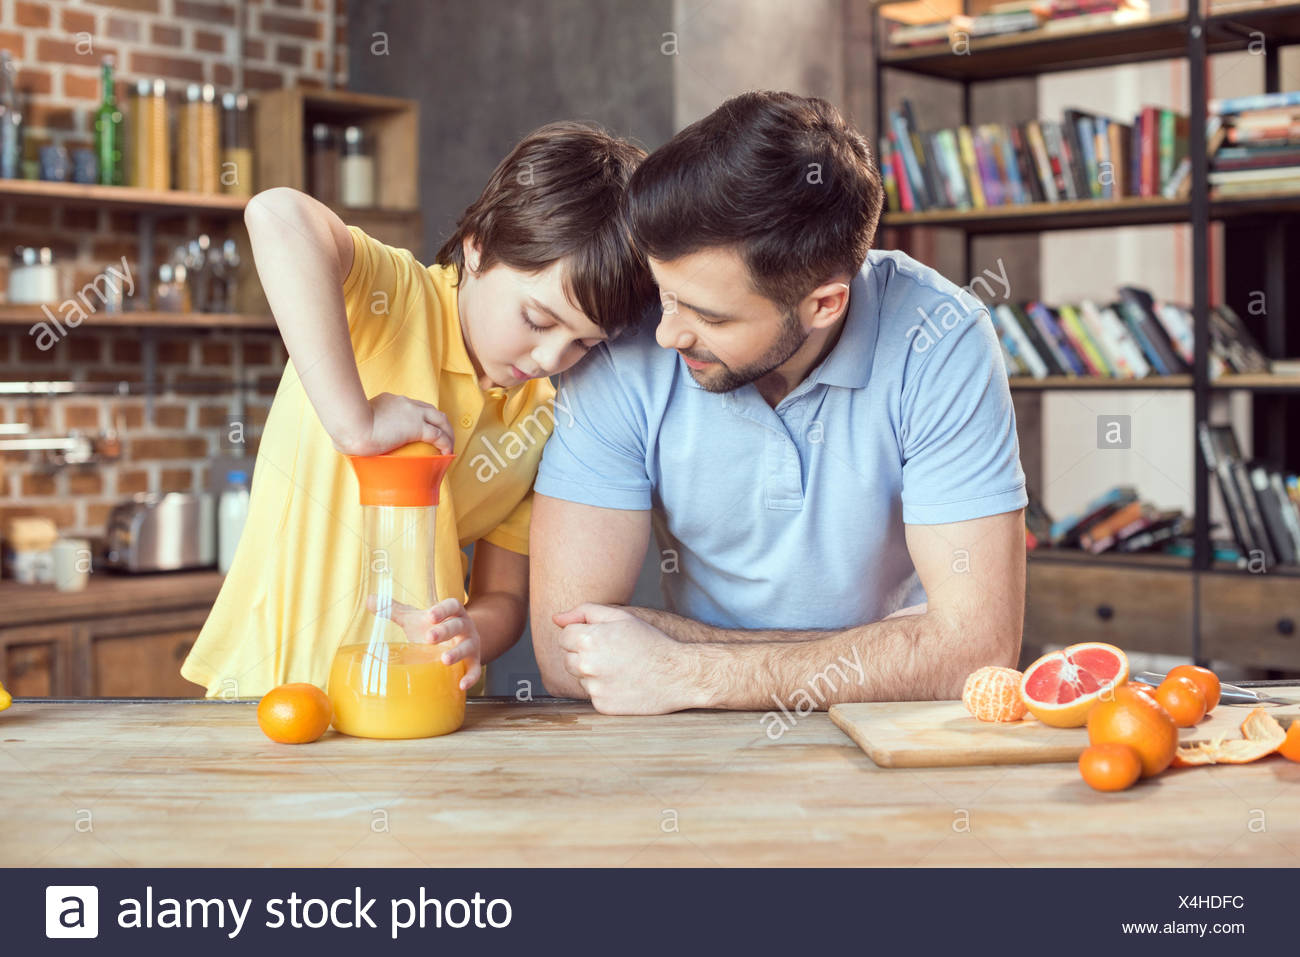 Father and son squeezing fresh orange juice at kitchen table Stock Photo